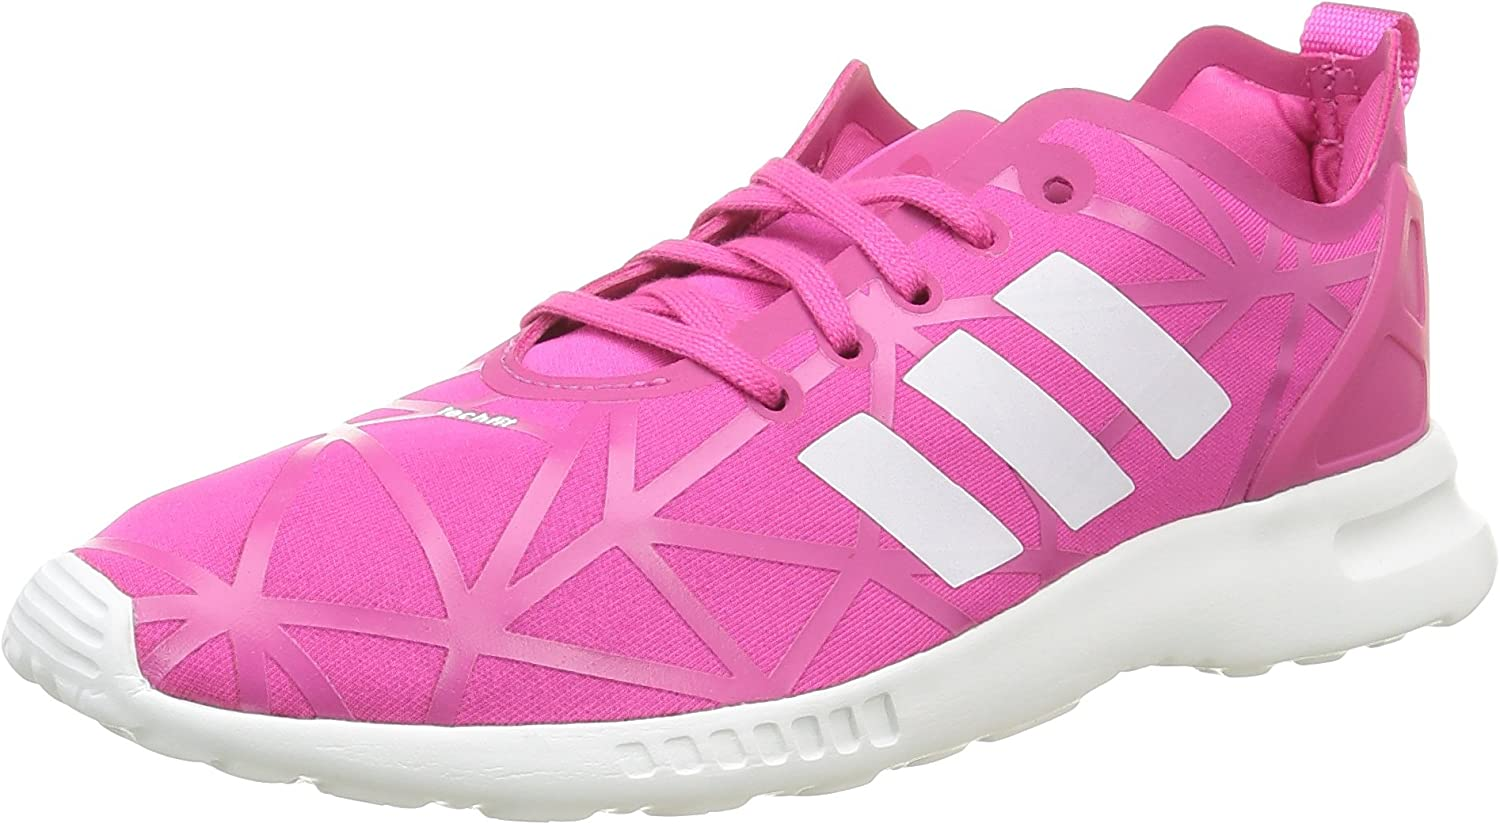 Adidas Women's Zx Flux Smooth Trainers